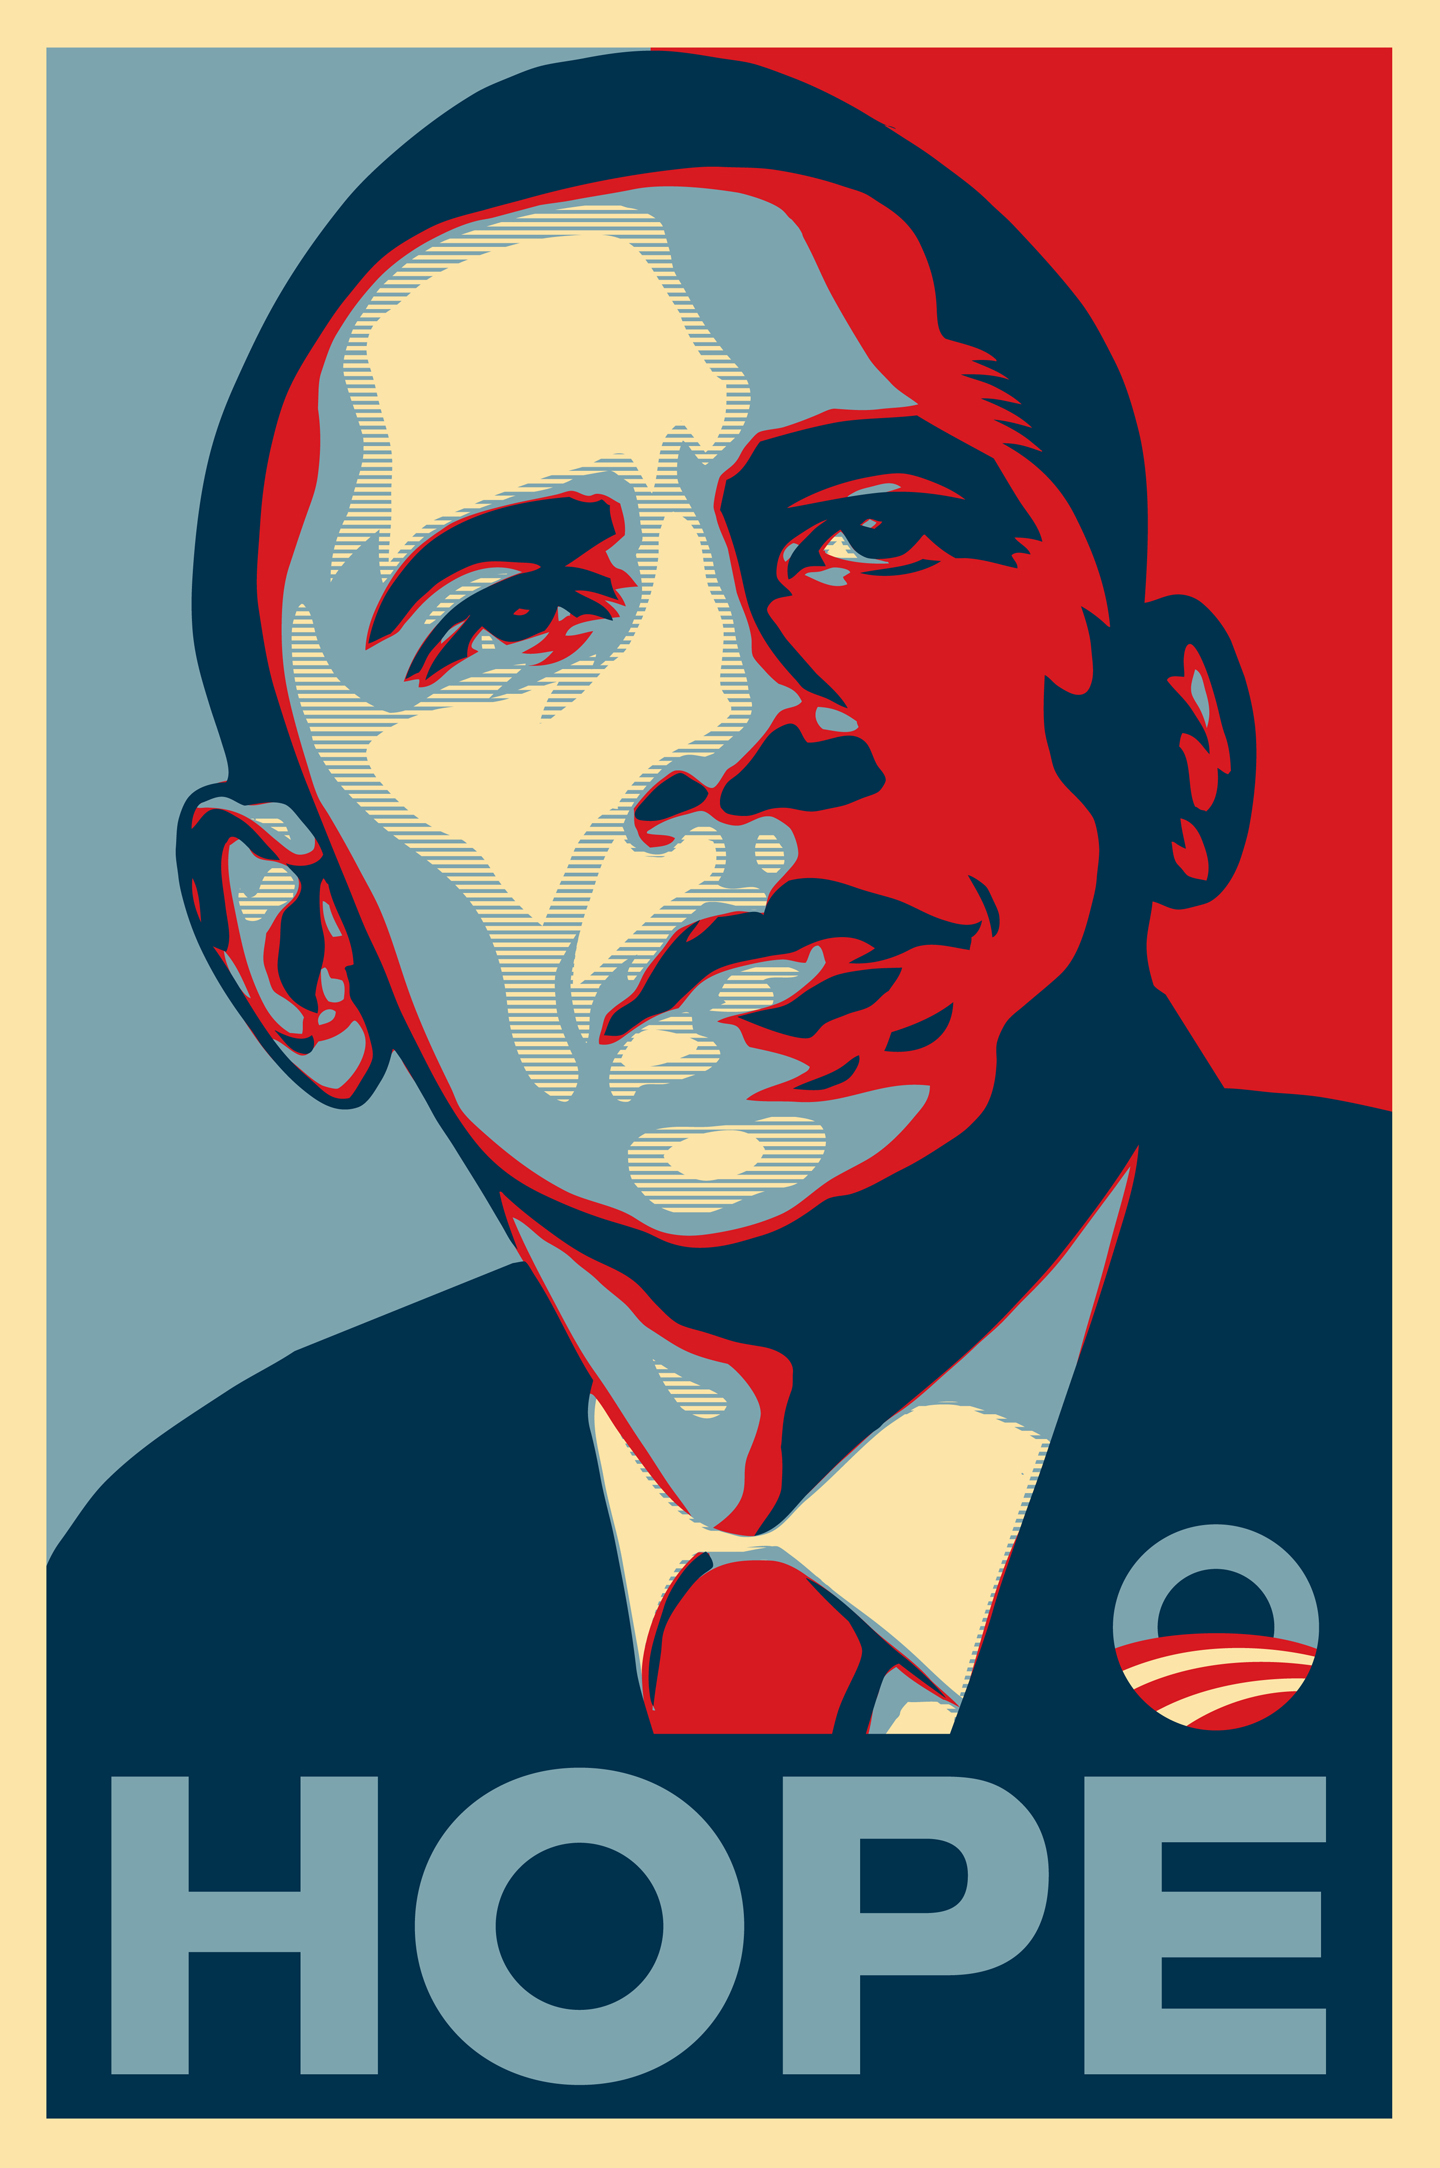 """Hope"" by Shepard Fairey. This picture is courtesy of The Smithsonian Institute. Barack Obama as presumptive nominee"